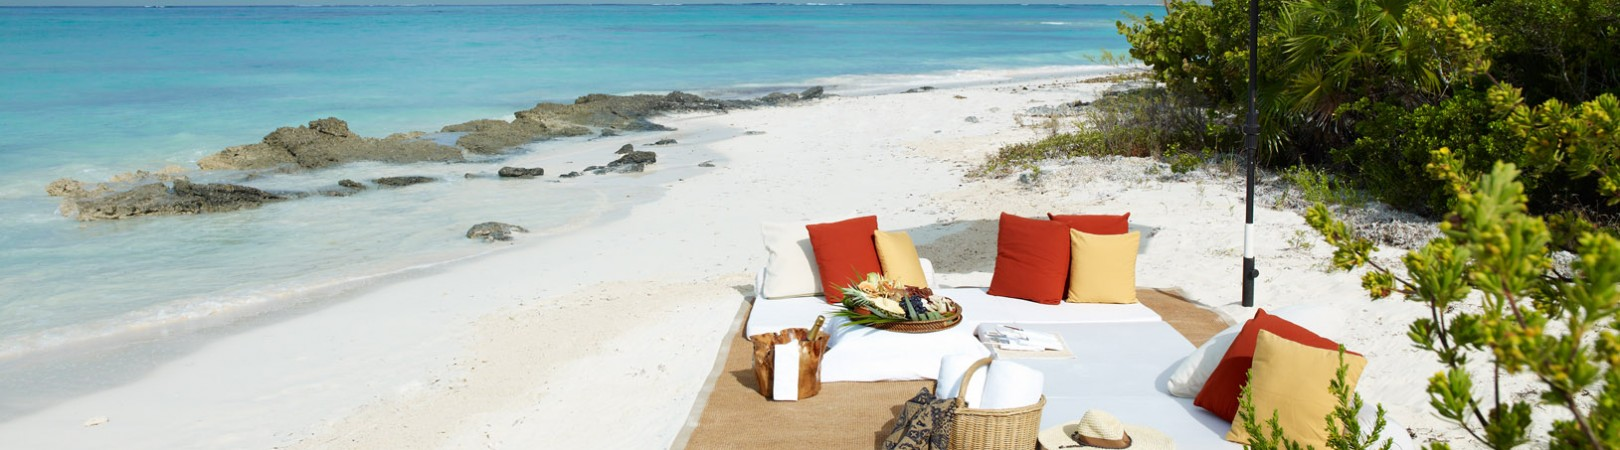 Turks-and-Caicos-Private-Charters